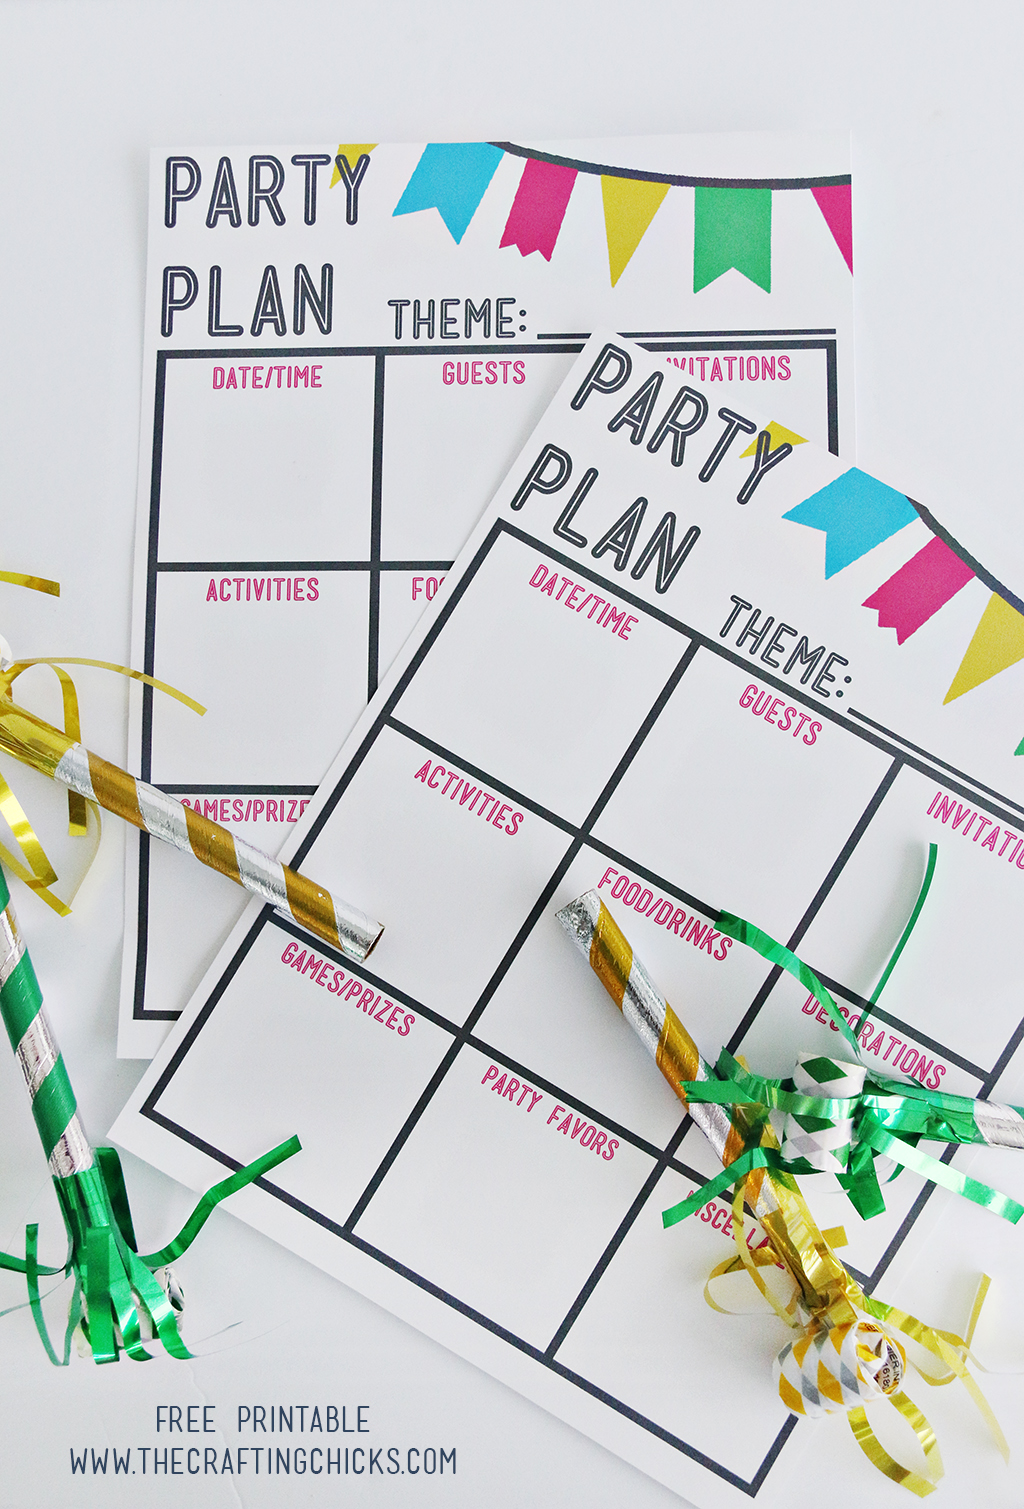 Party Plan Printable and party planning tips!